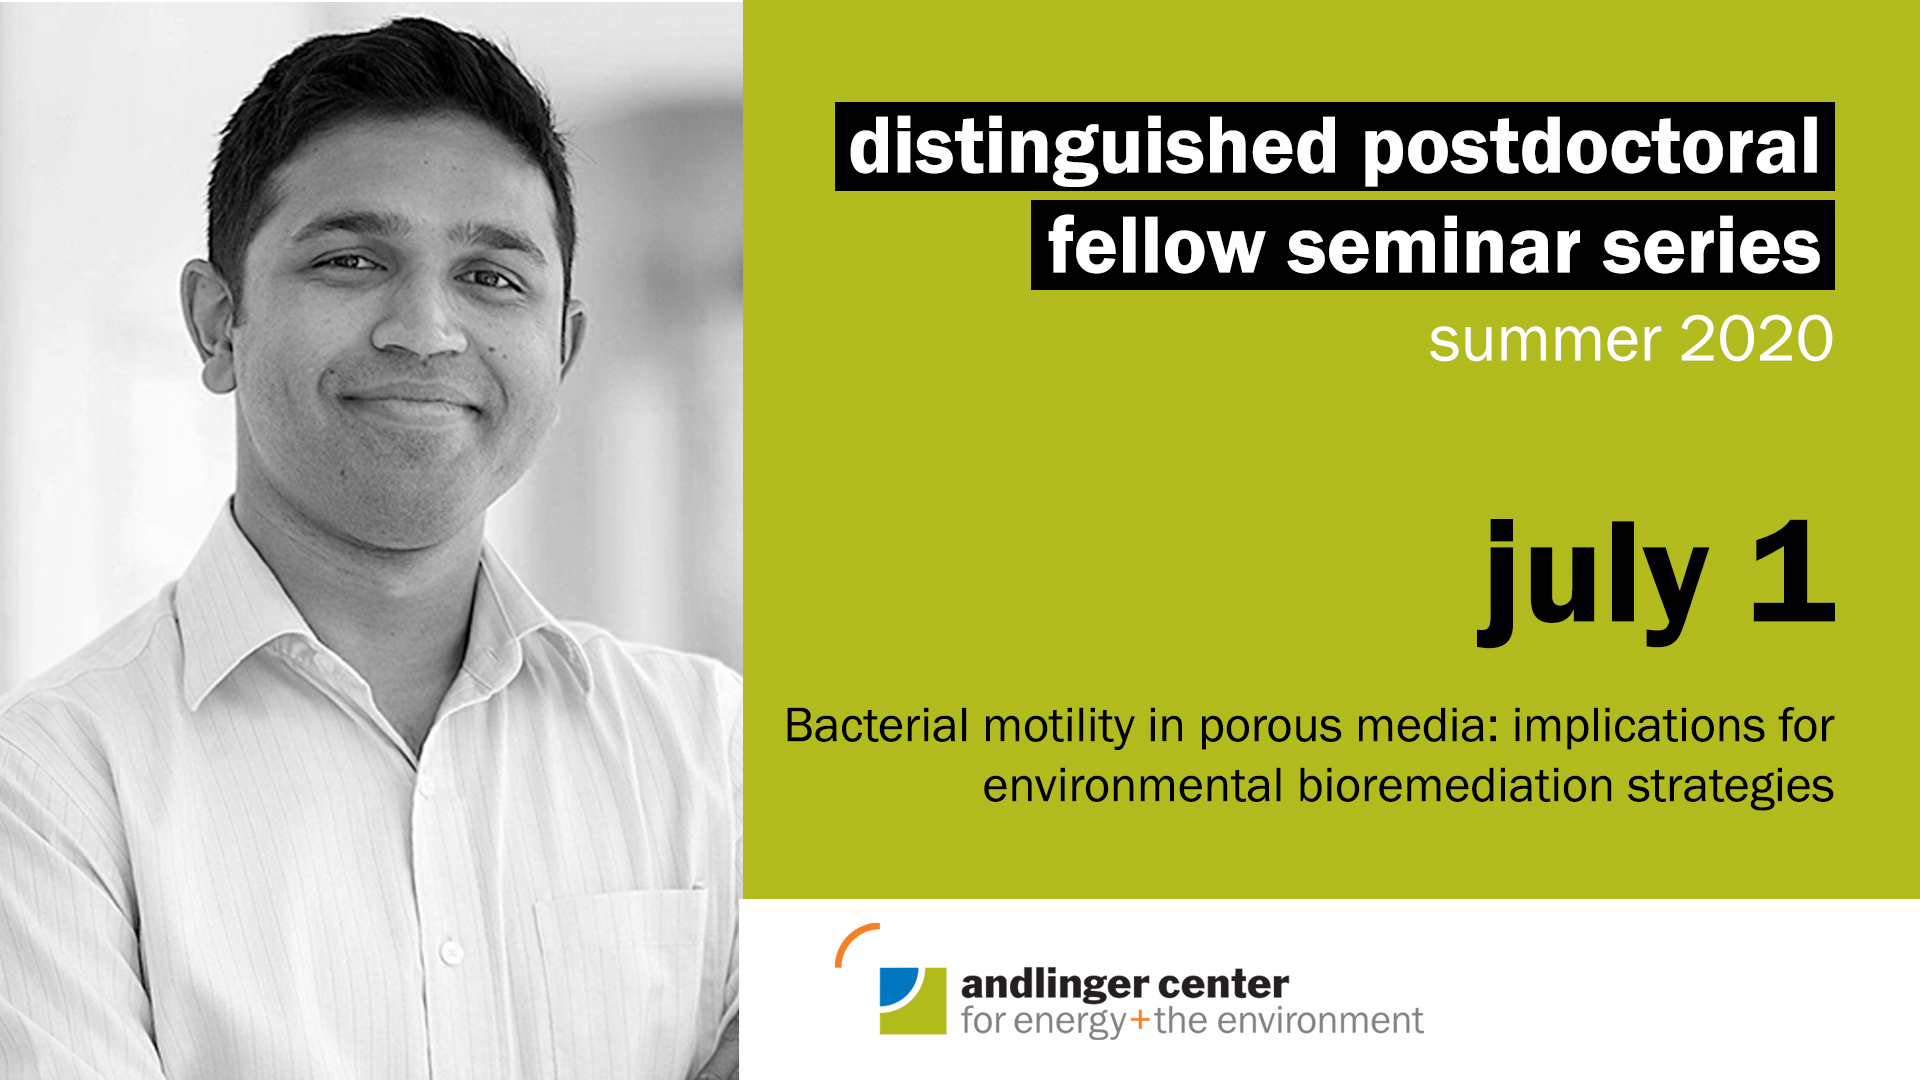 """July 1 at 2pmBhattacharjee's current research focuses on understanding and controlling the behavior of bacterial communities for water remediation. Bhattacharjee also collaborates with researchers in the Departments of Physics, Civil and Environmental Engineering, Molecular Biology, and at the Andlinger Center for Energy and the Environment. He also collaborates with researchers in bioremediation at the University of Virginia. Bhattacharjee published his most recent work from Princeton University in Nature Communications and Soft Matter. He is mentored by Prof. Sujit Datta in Chemical and Biological Engineering.Twitter 